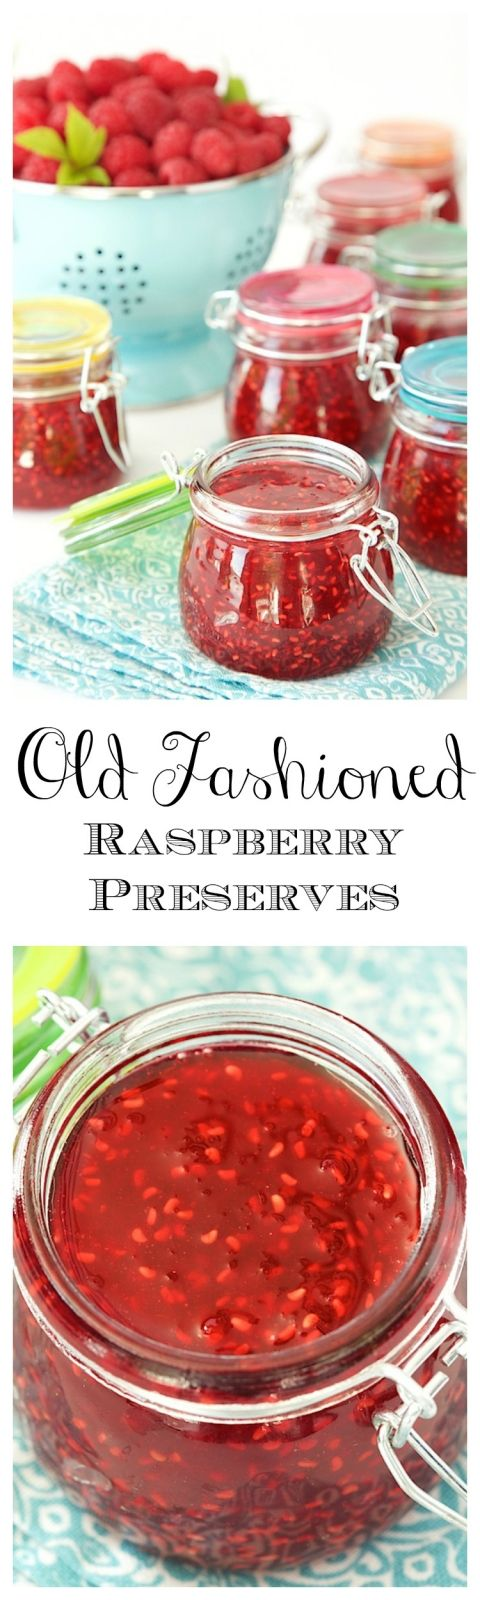 Old Fashioned Raspberry Preserves - so easy and so full of fresh raspberry flavor. These will be like delicious little jars of sunshine on cold winter mornings - and It will take you less than 30 minutes to make 6 jars of jam!